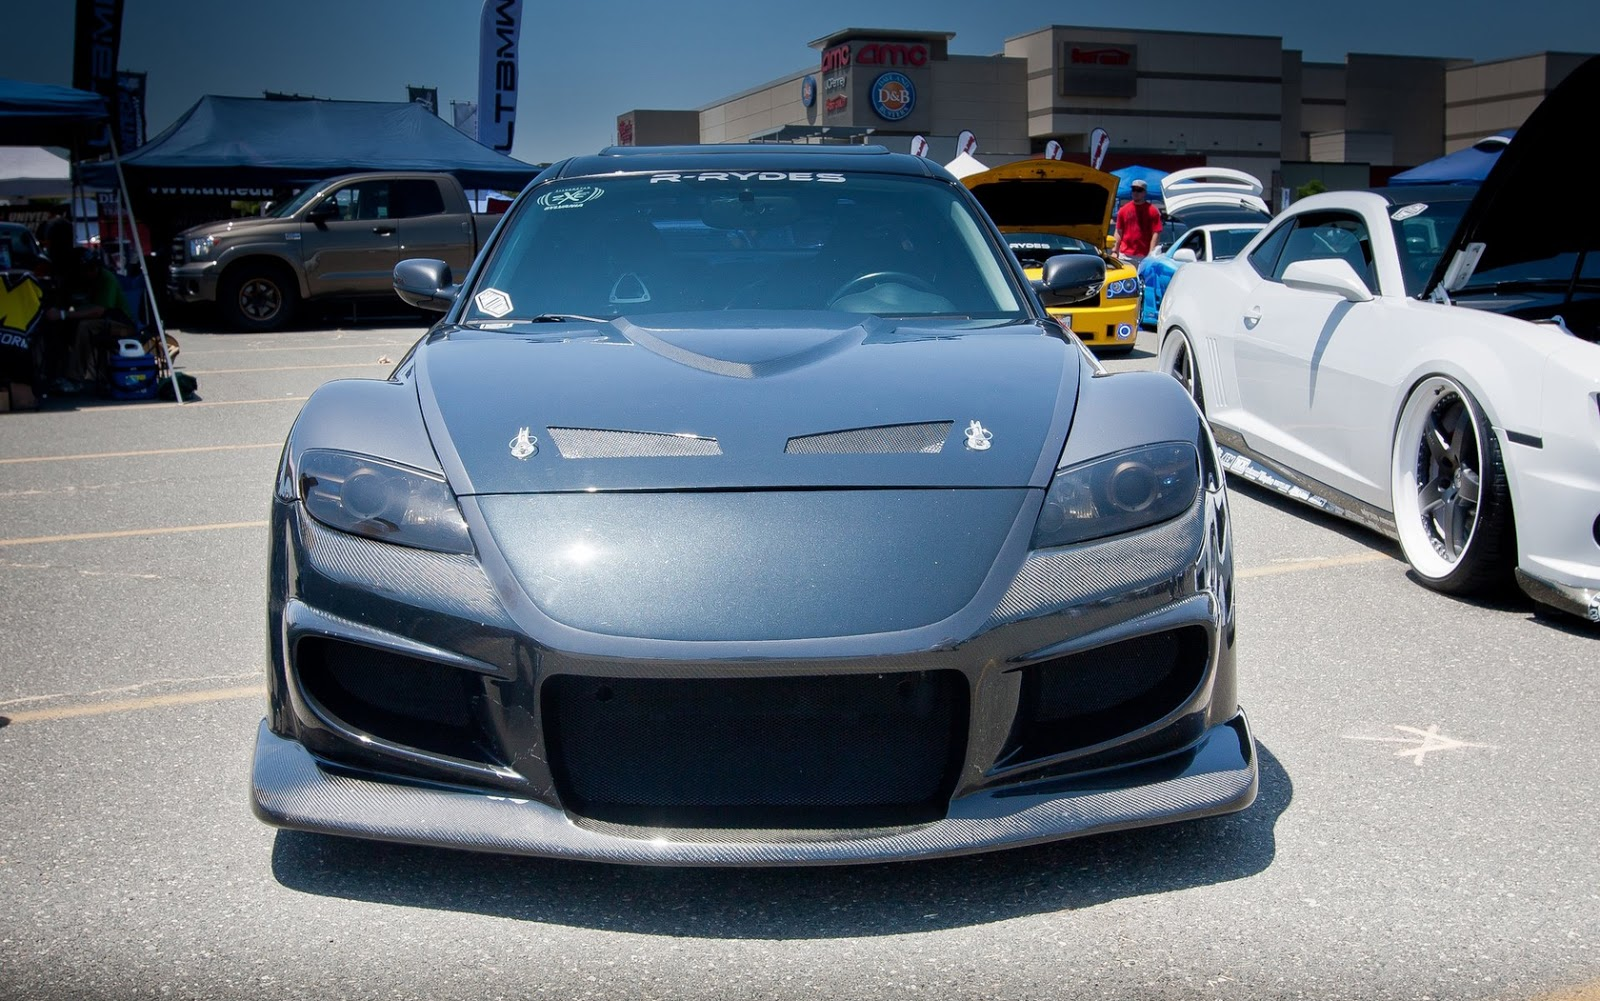 Tuned Mazda Rx8 With Veilside Widebody Kit And Ace Wheels